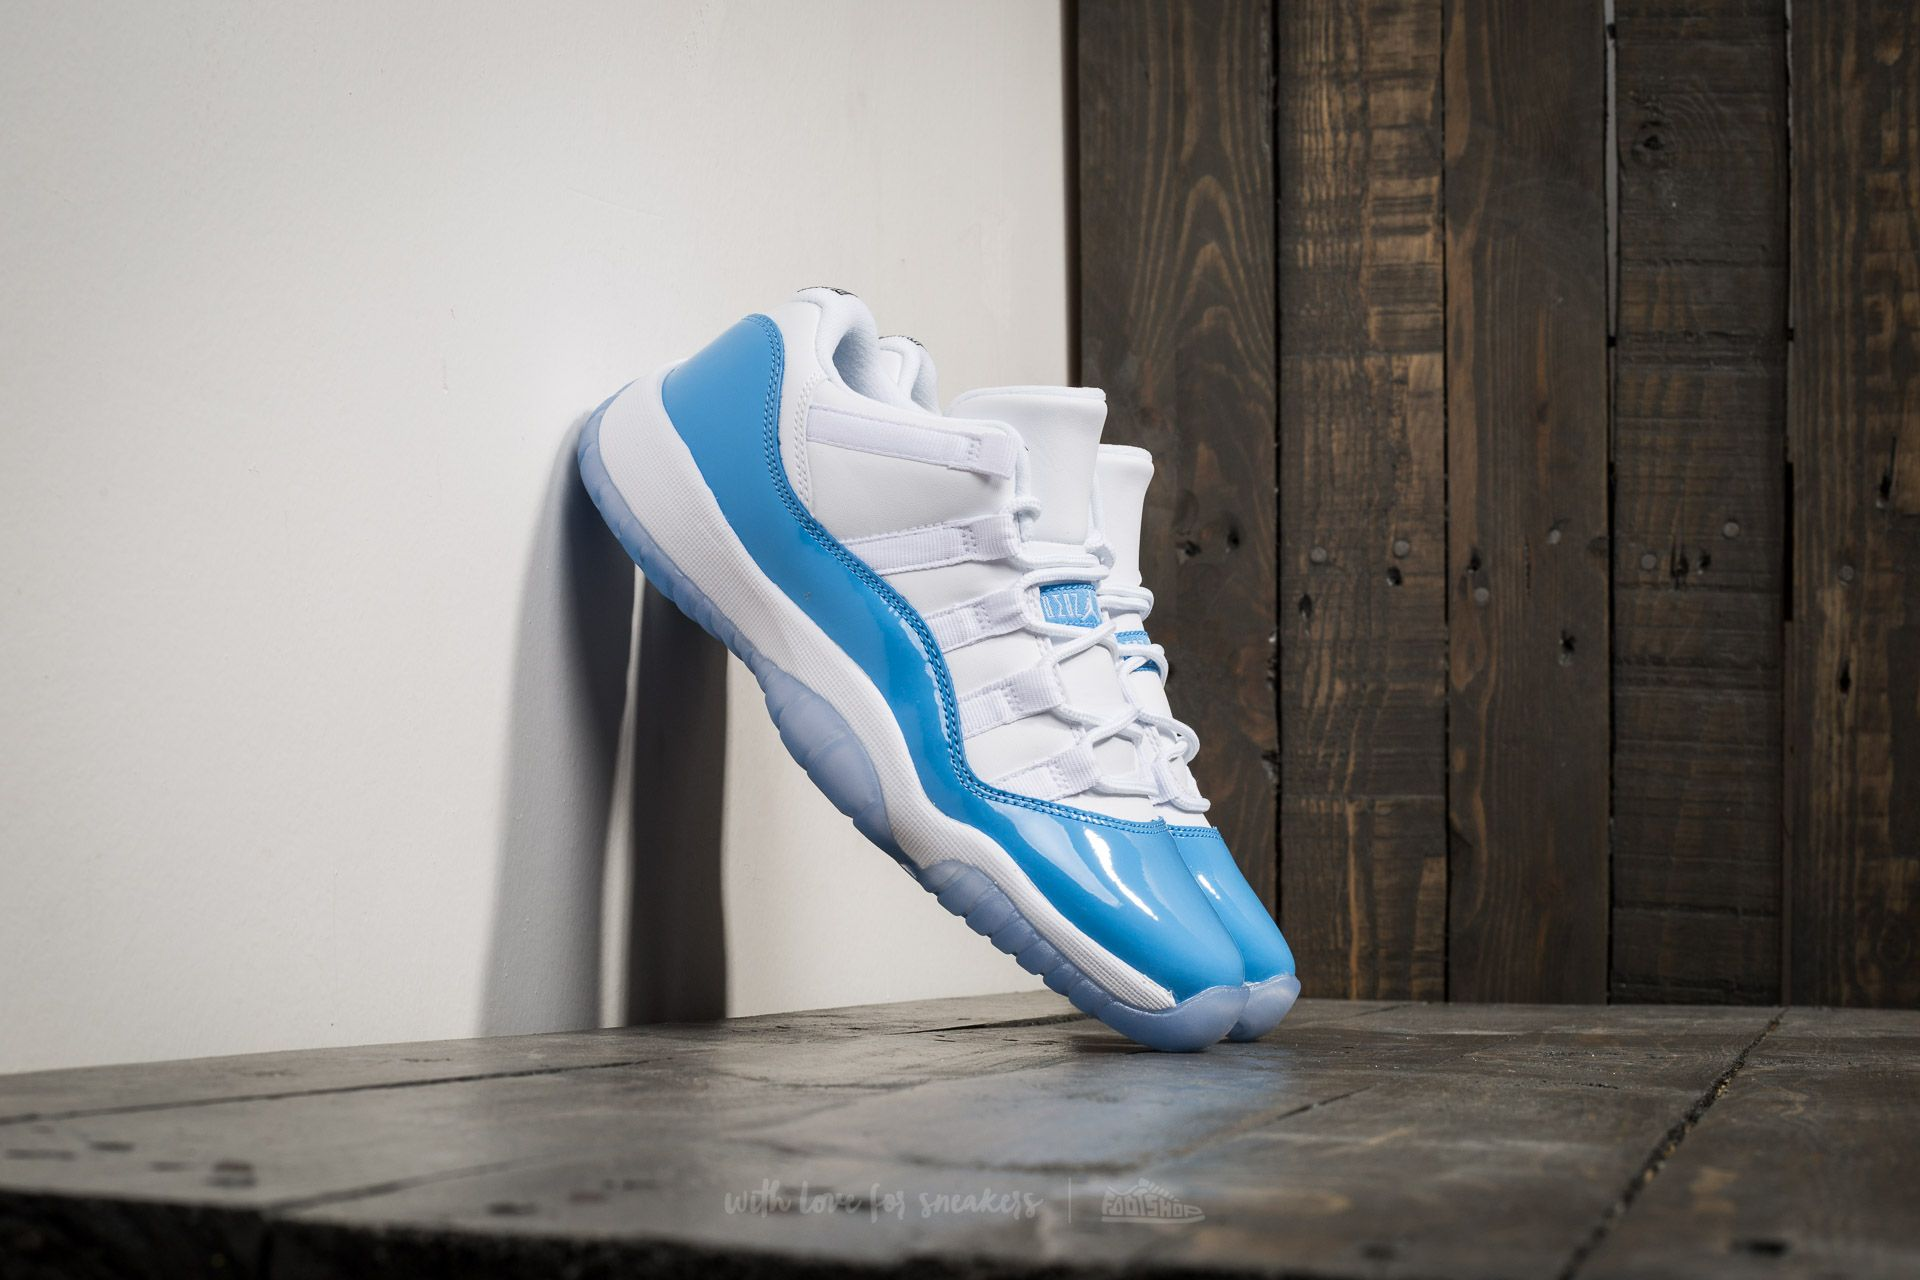 Air Jordan 11 Retro Low (BG) White/ University Blue - 16191